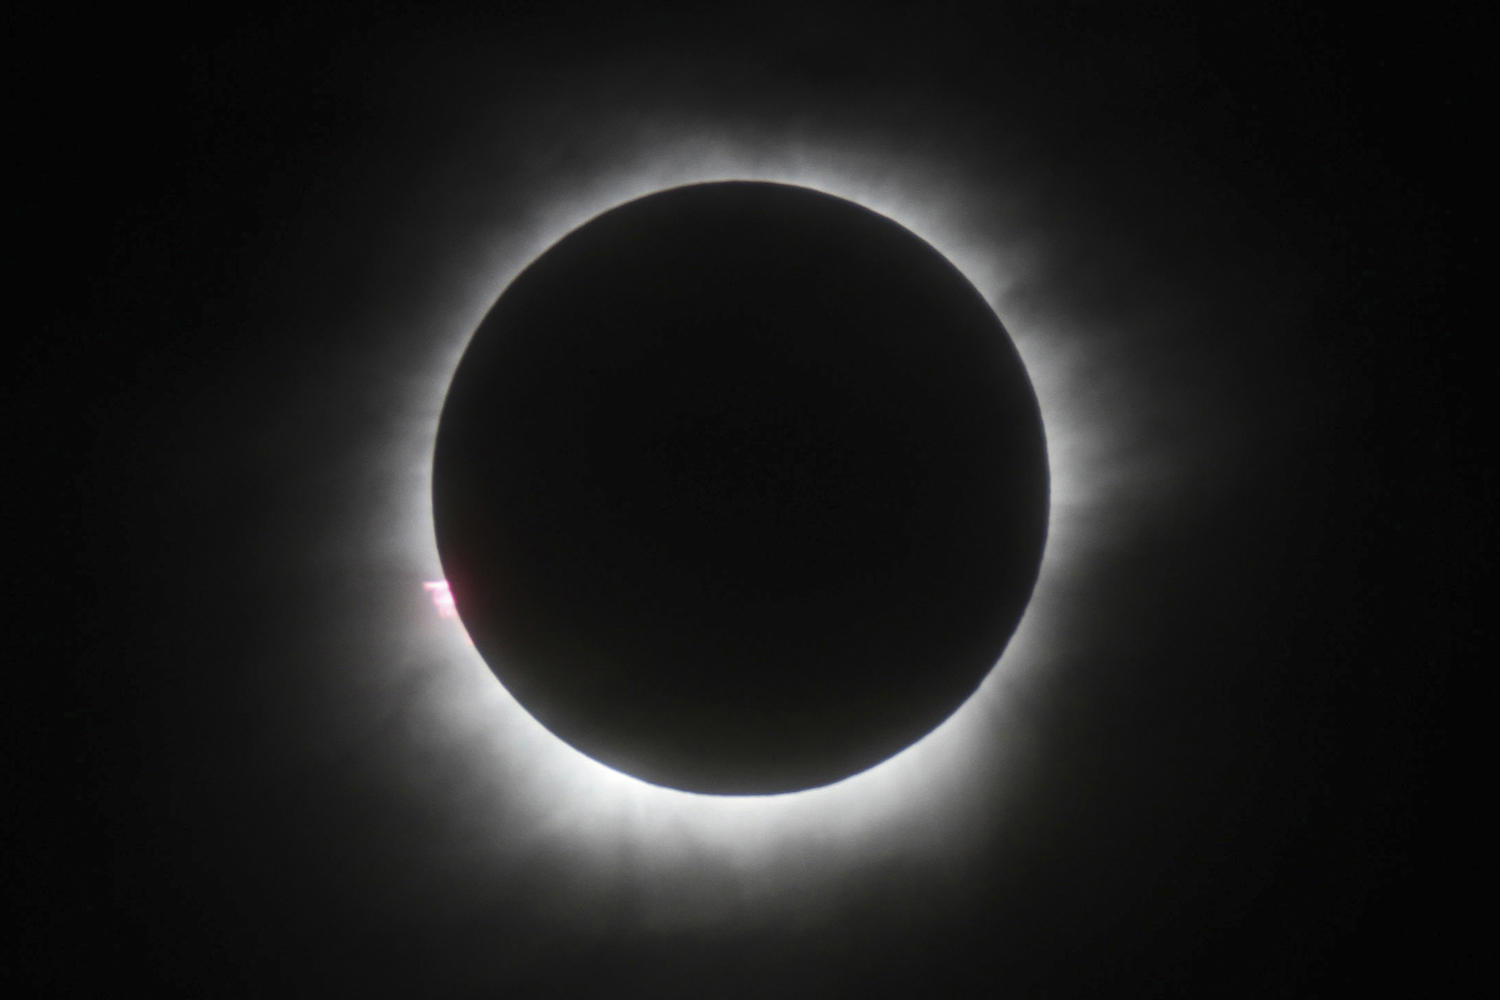 Total solar eclipse: What you need to know